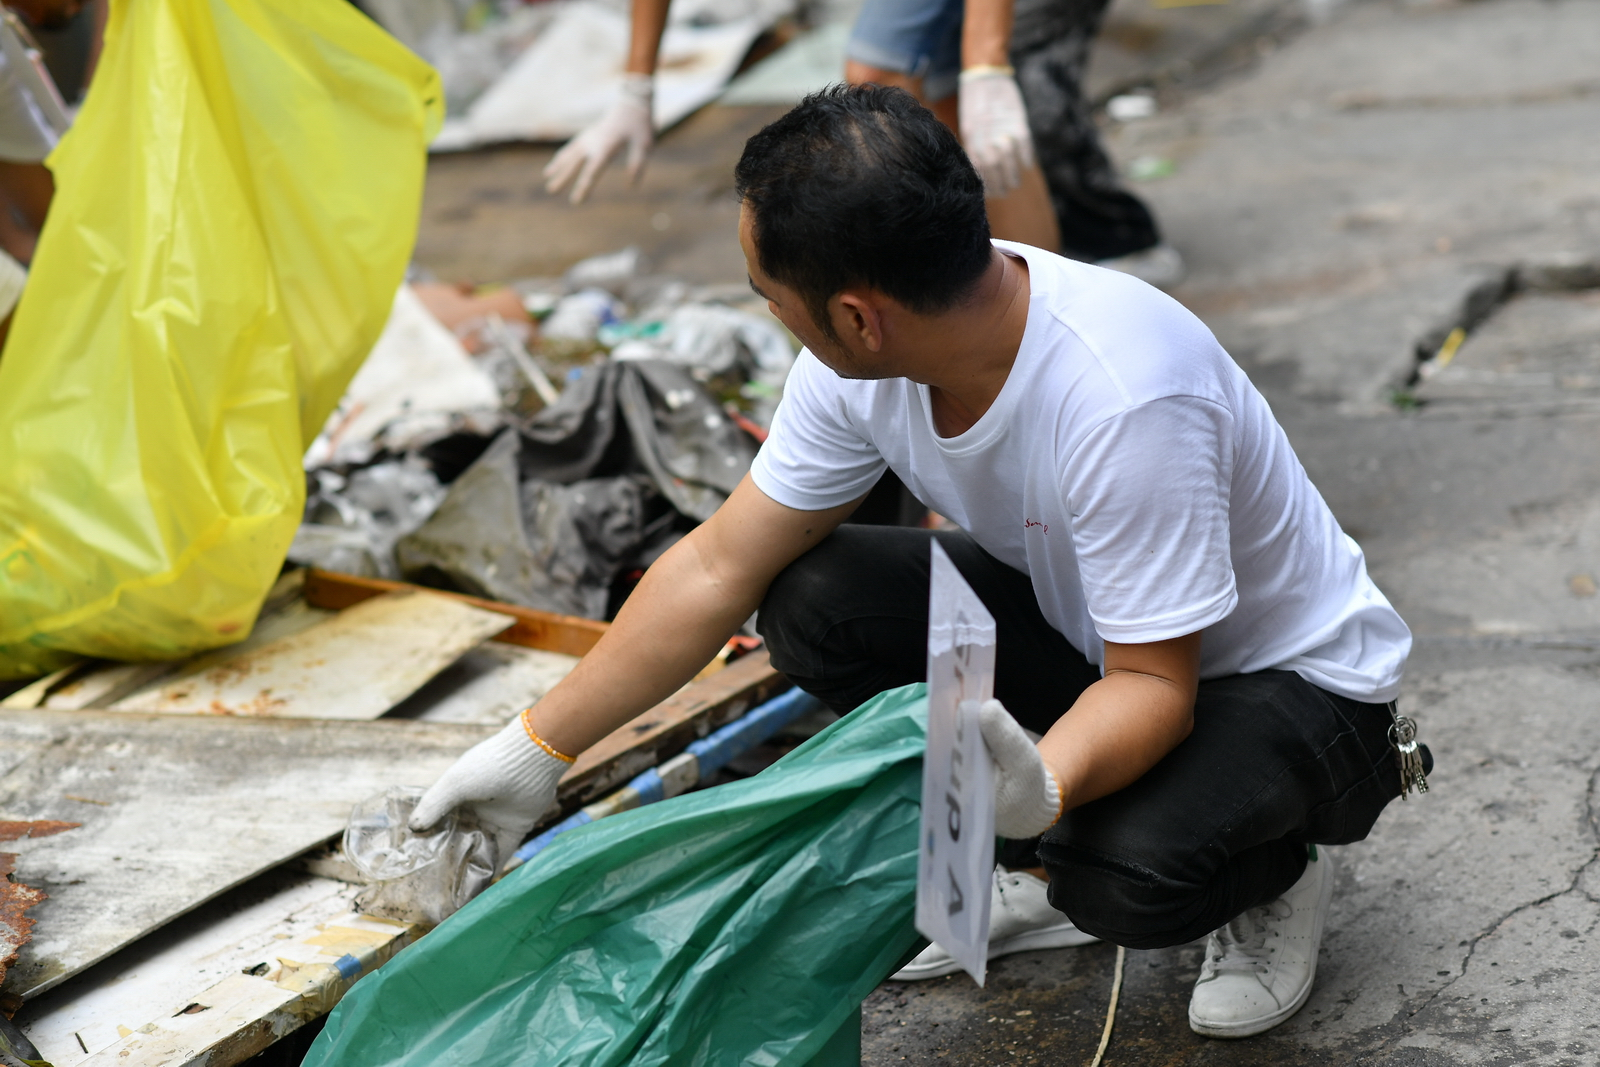 PTendercool-Event-Clean Up The World-190921-102